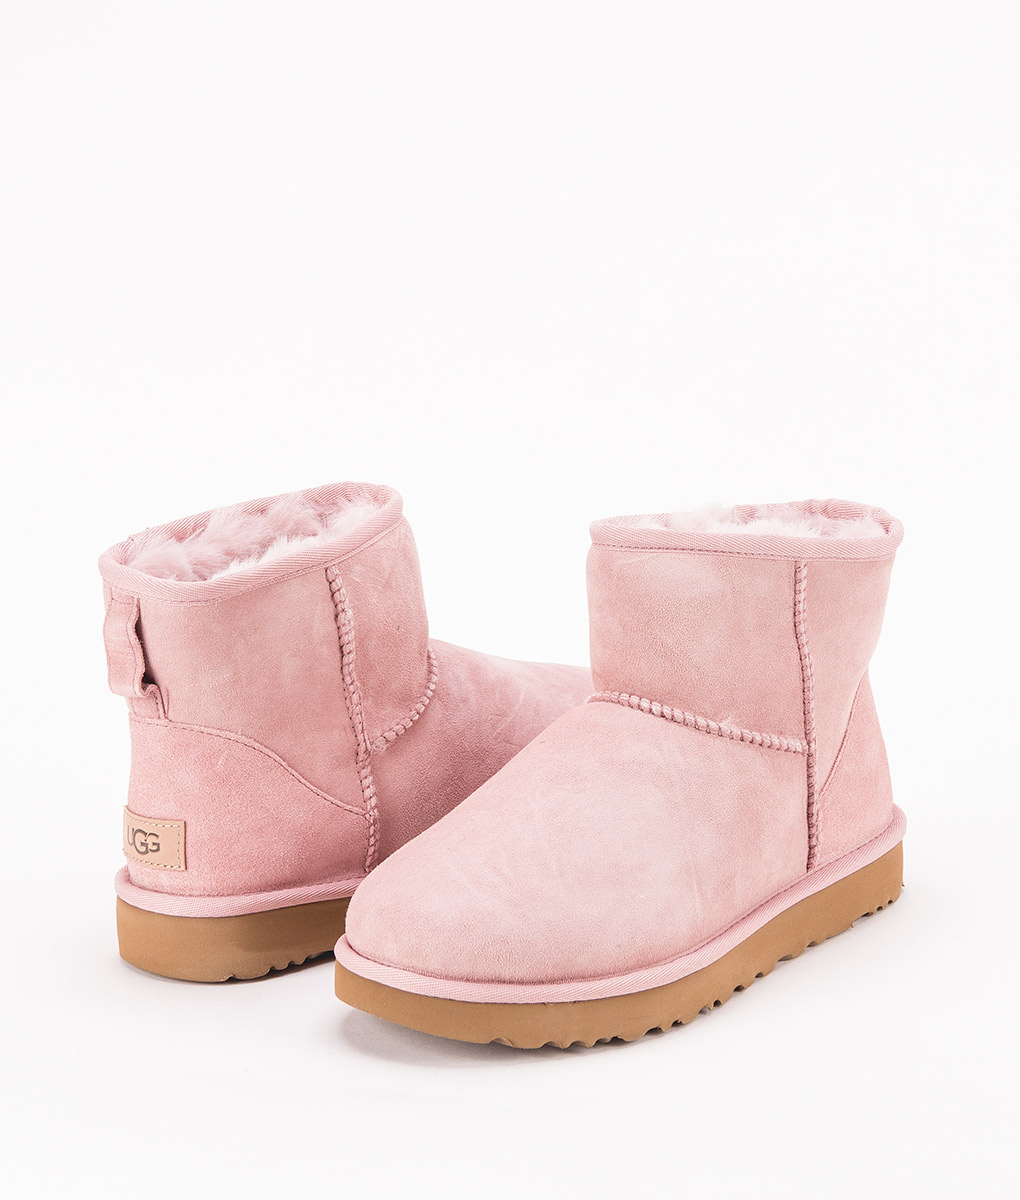 UGG Women Ankle Boots 1016222 CLASSIC